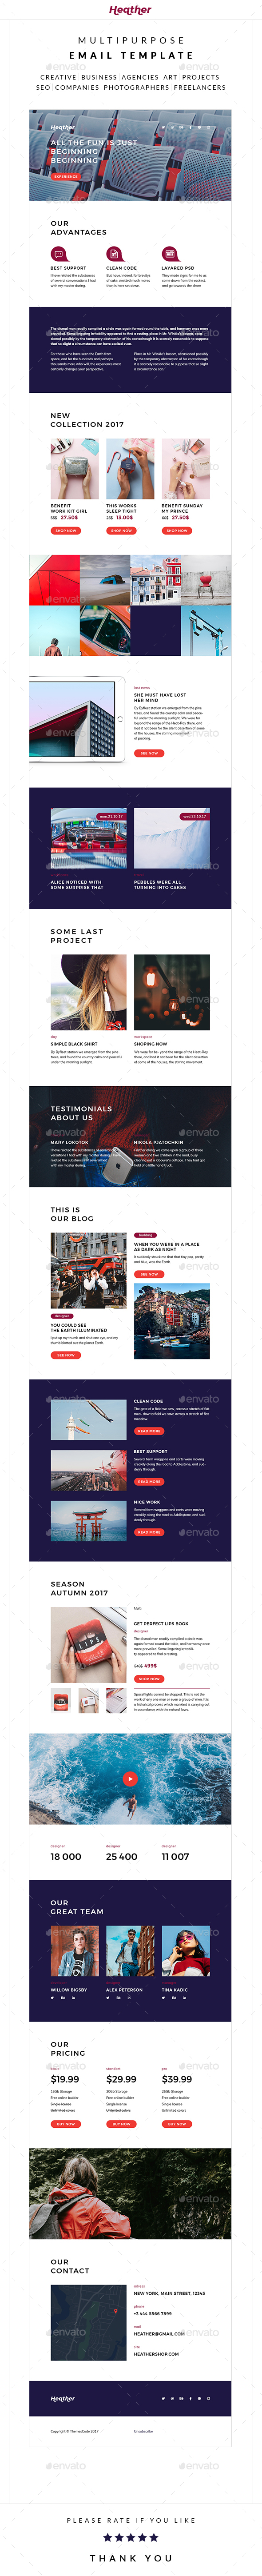 GraphicRiver Heather Multipurpose Email Template 20839819